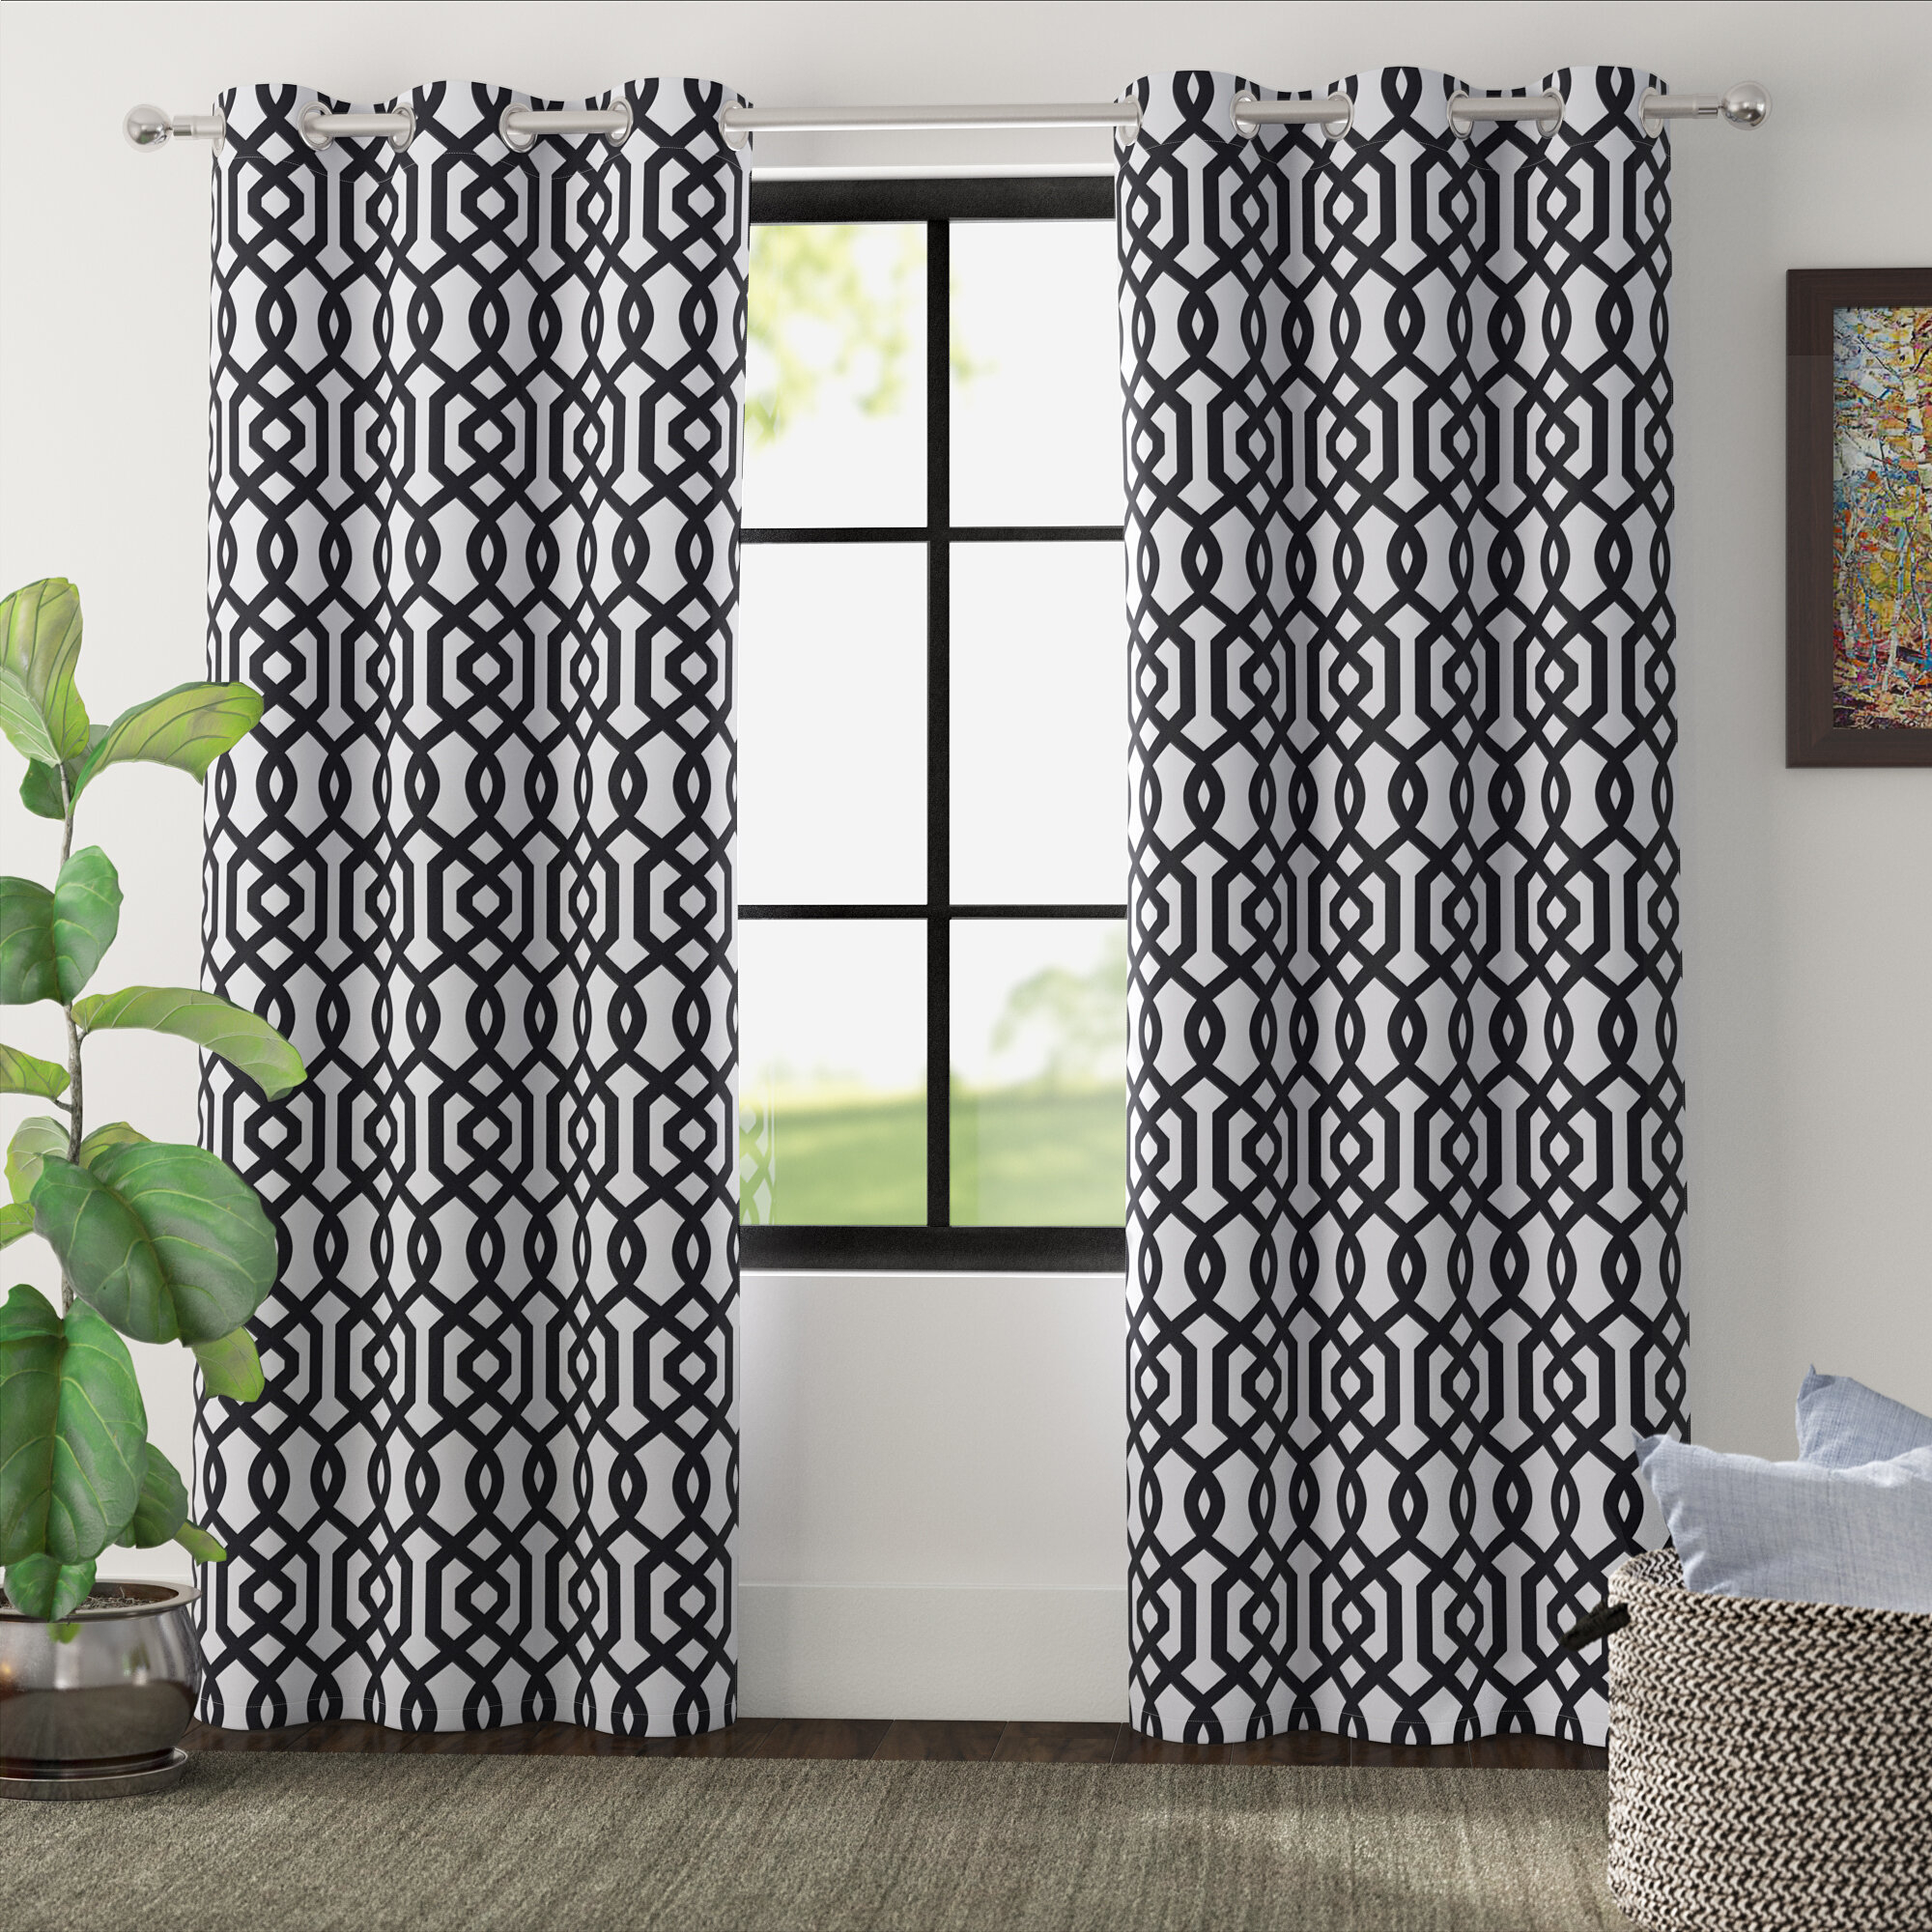 Grommet Curtain Patterns In Primebeau Geometric Pattern Blackout Curtain Pairs (View 14 of 20)